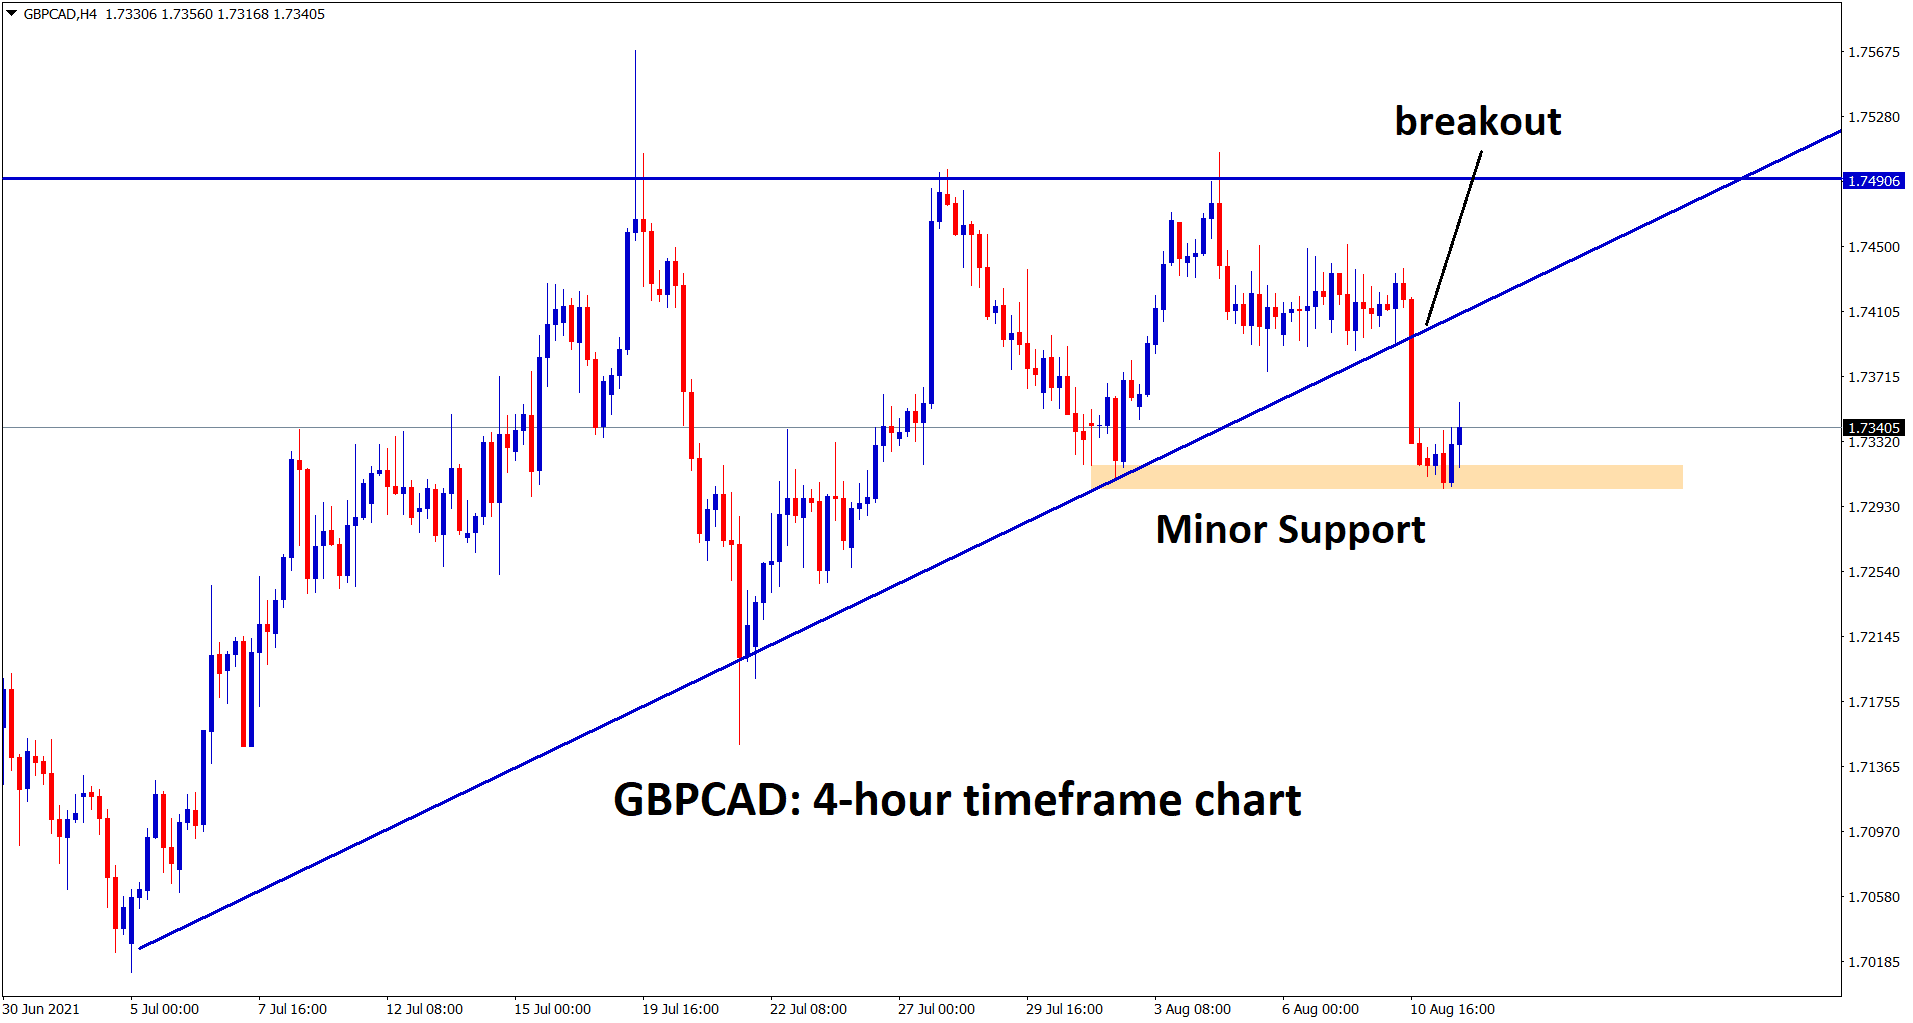 GBPCAD broken the ascending triangle and standing now at the minor support